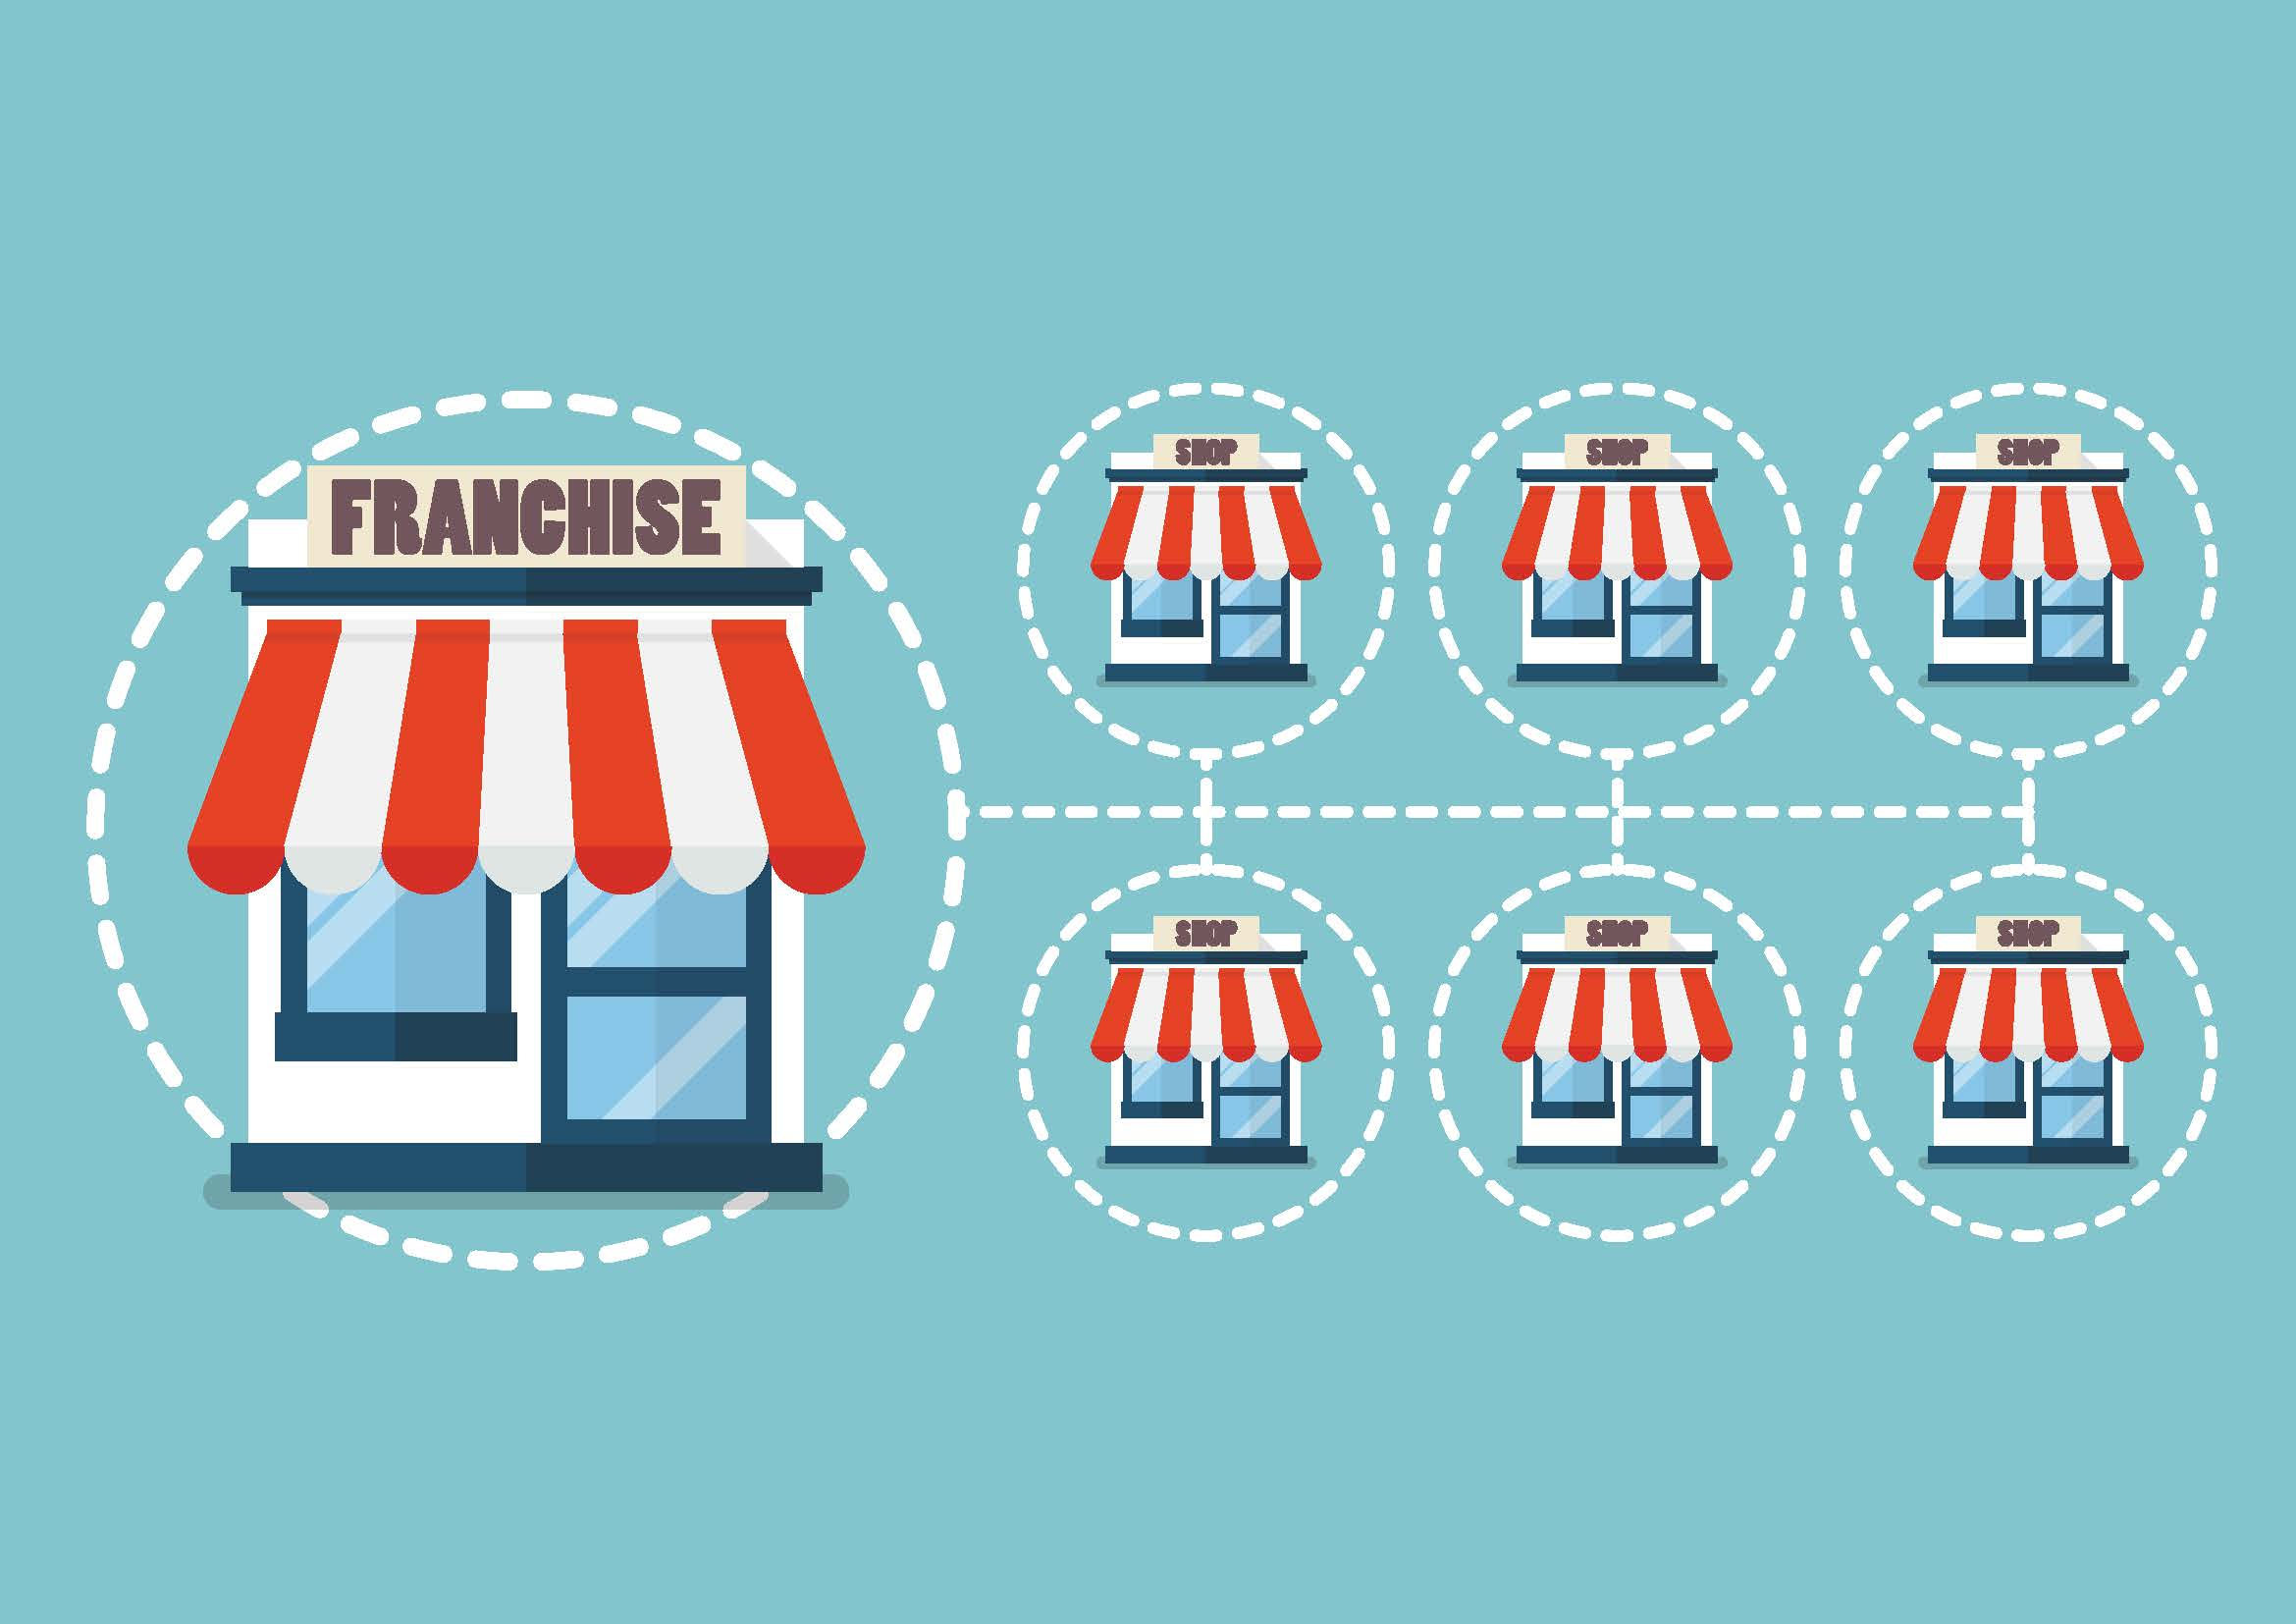 PROCEDURES FOR FRANCHISING UNDER THE LATEST LEGAL REGULATIONS